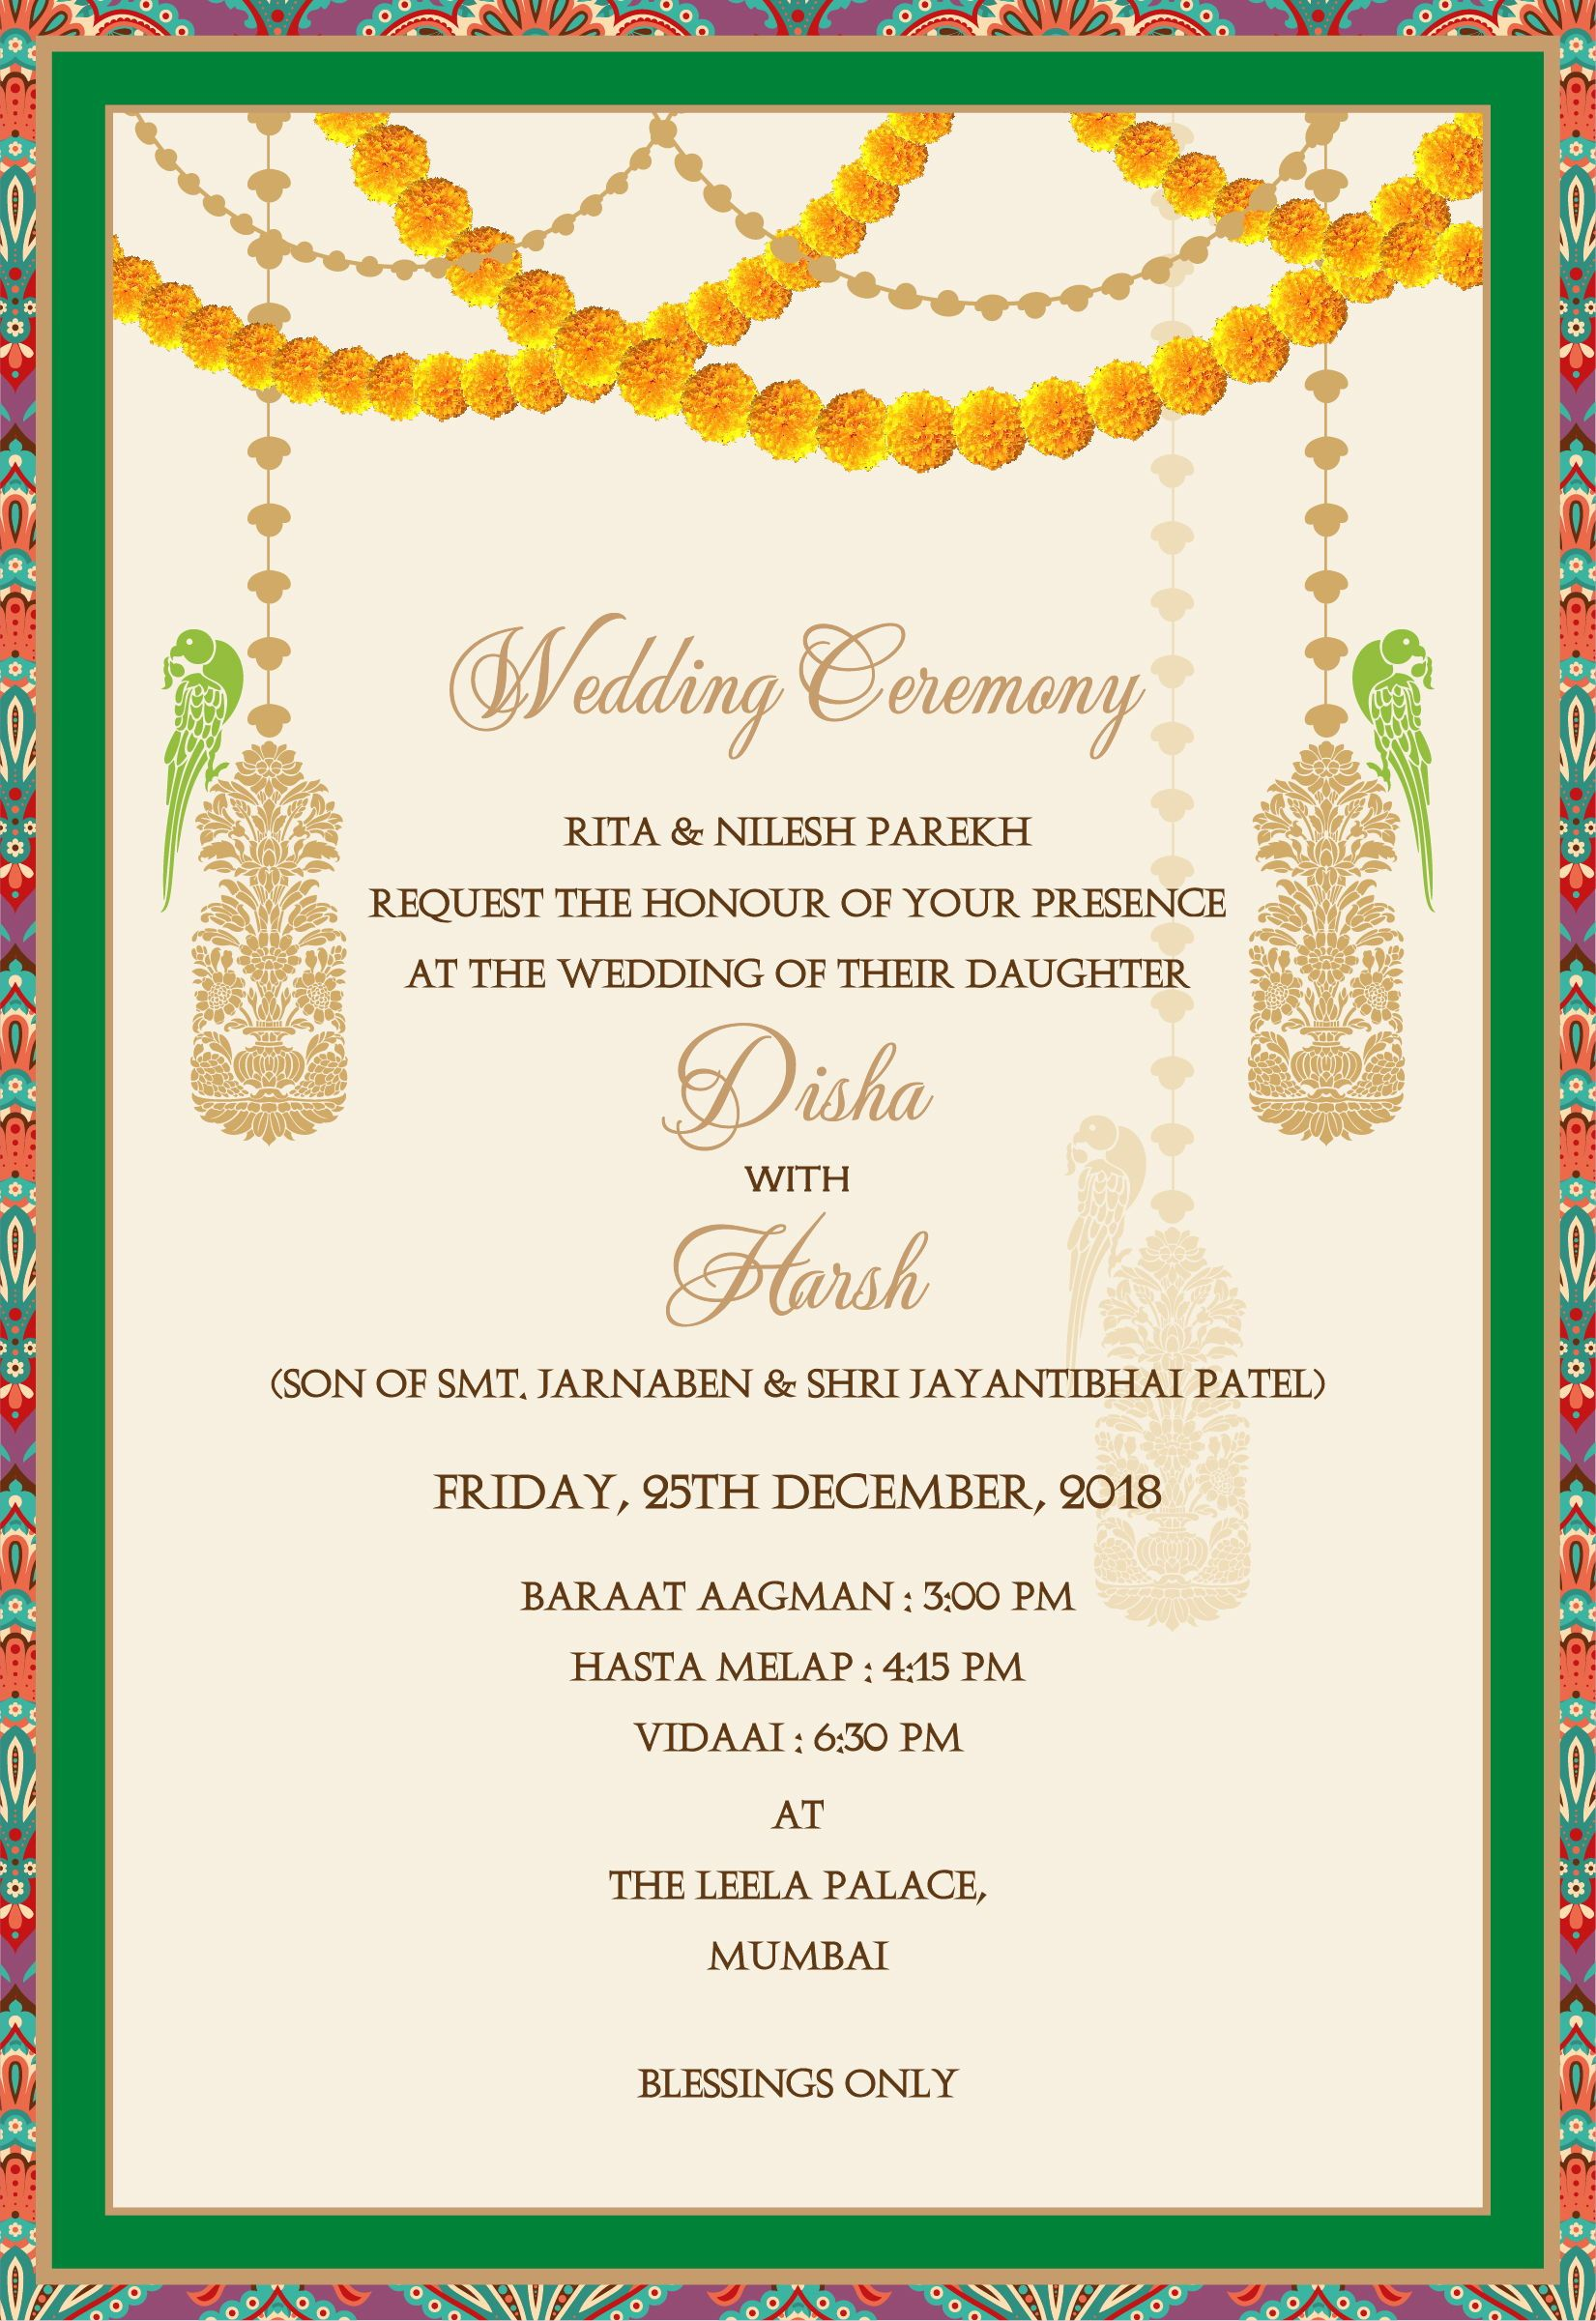 Wedding invitation cards, Indian wedding cards, invites, Wedding